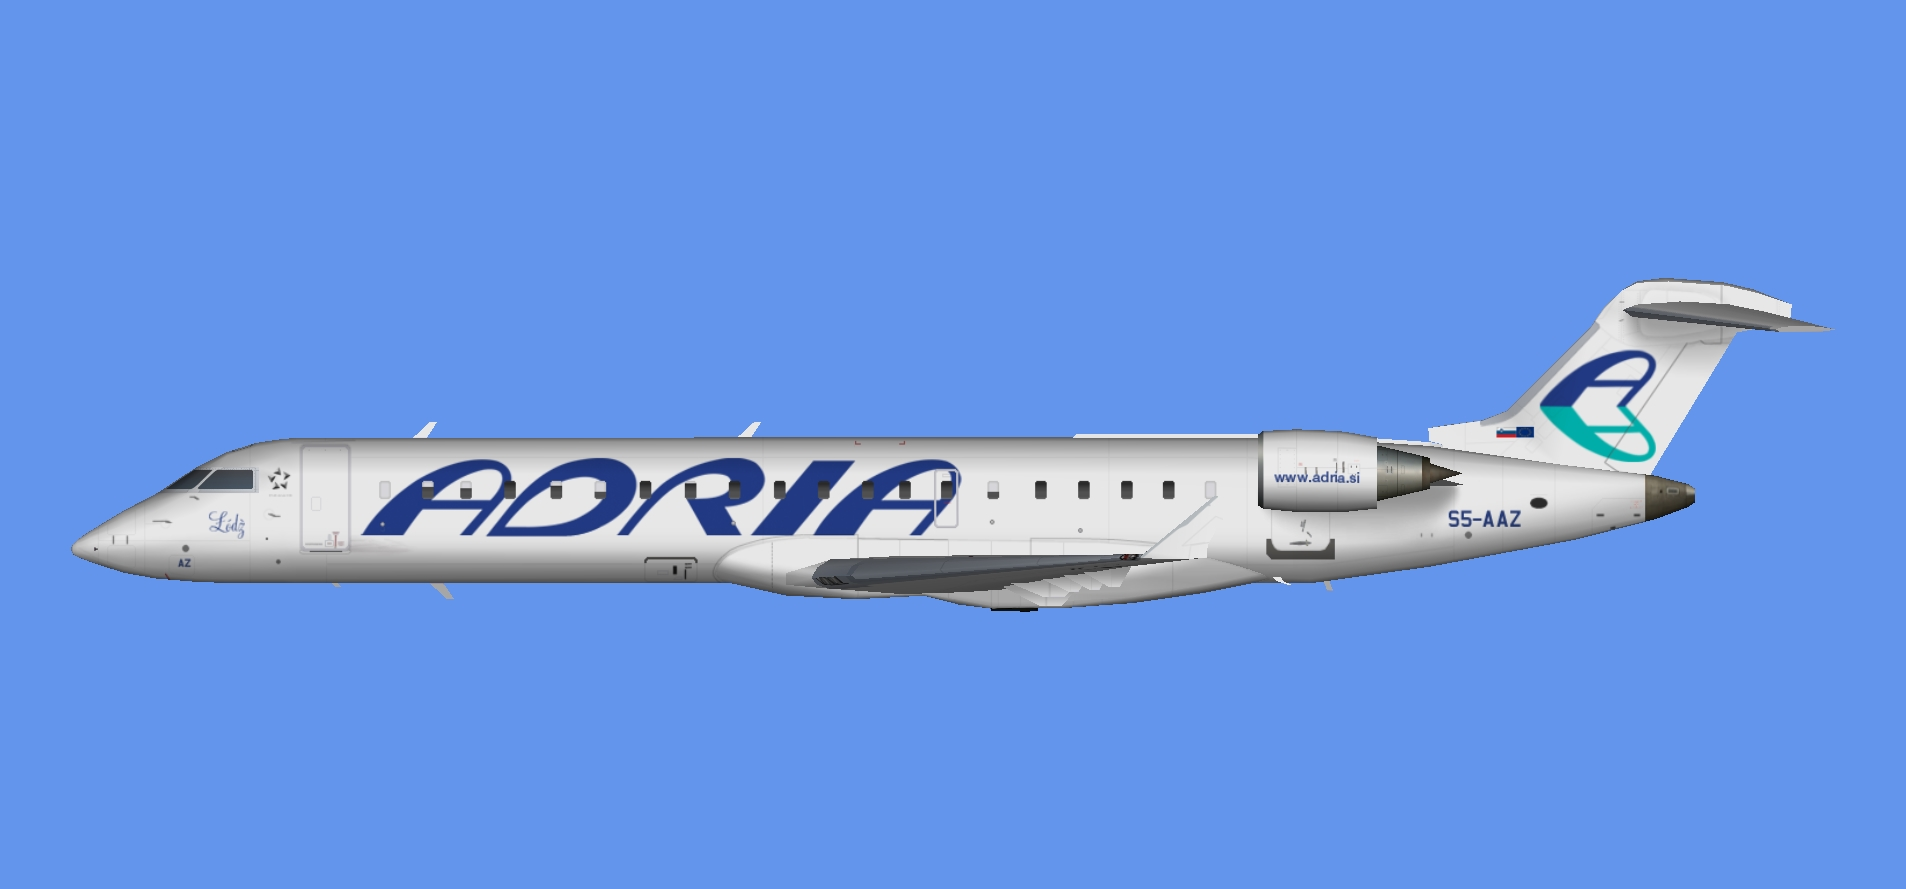 Adria Airways CRJ-700